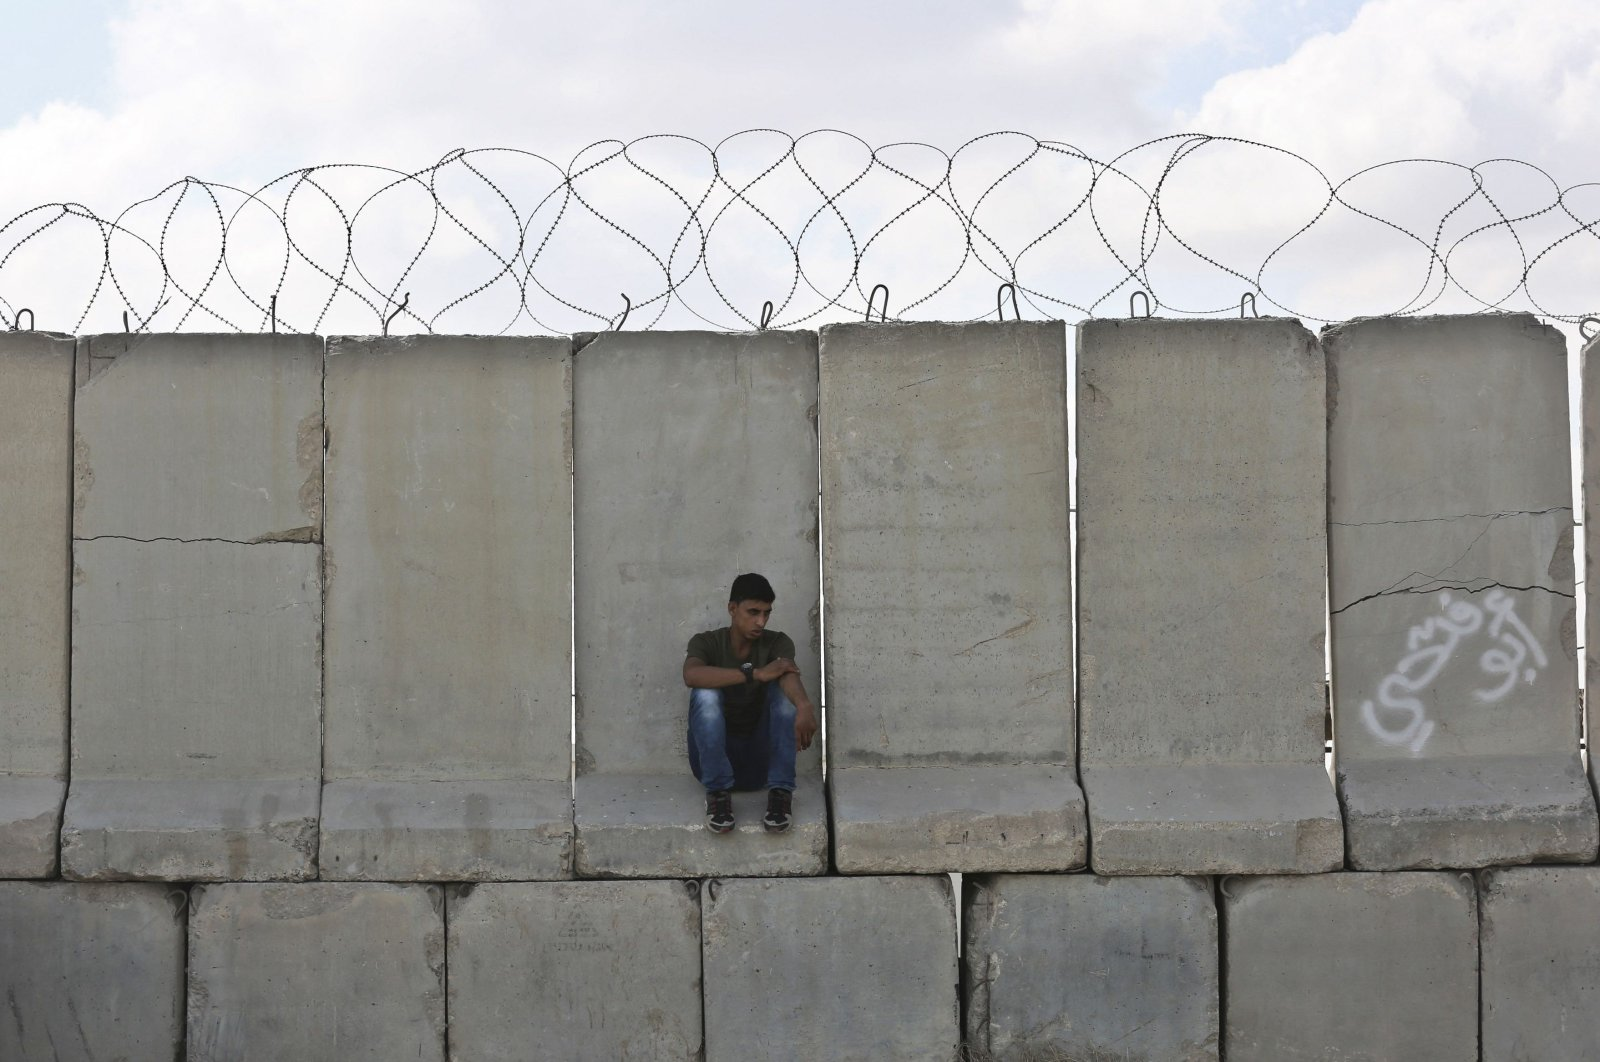 A Palestinian man sits on cement barricades at Kerem Shalom crossing, Rafah, Aug. 15, 2018. (AFP Photo)